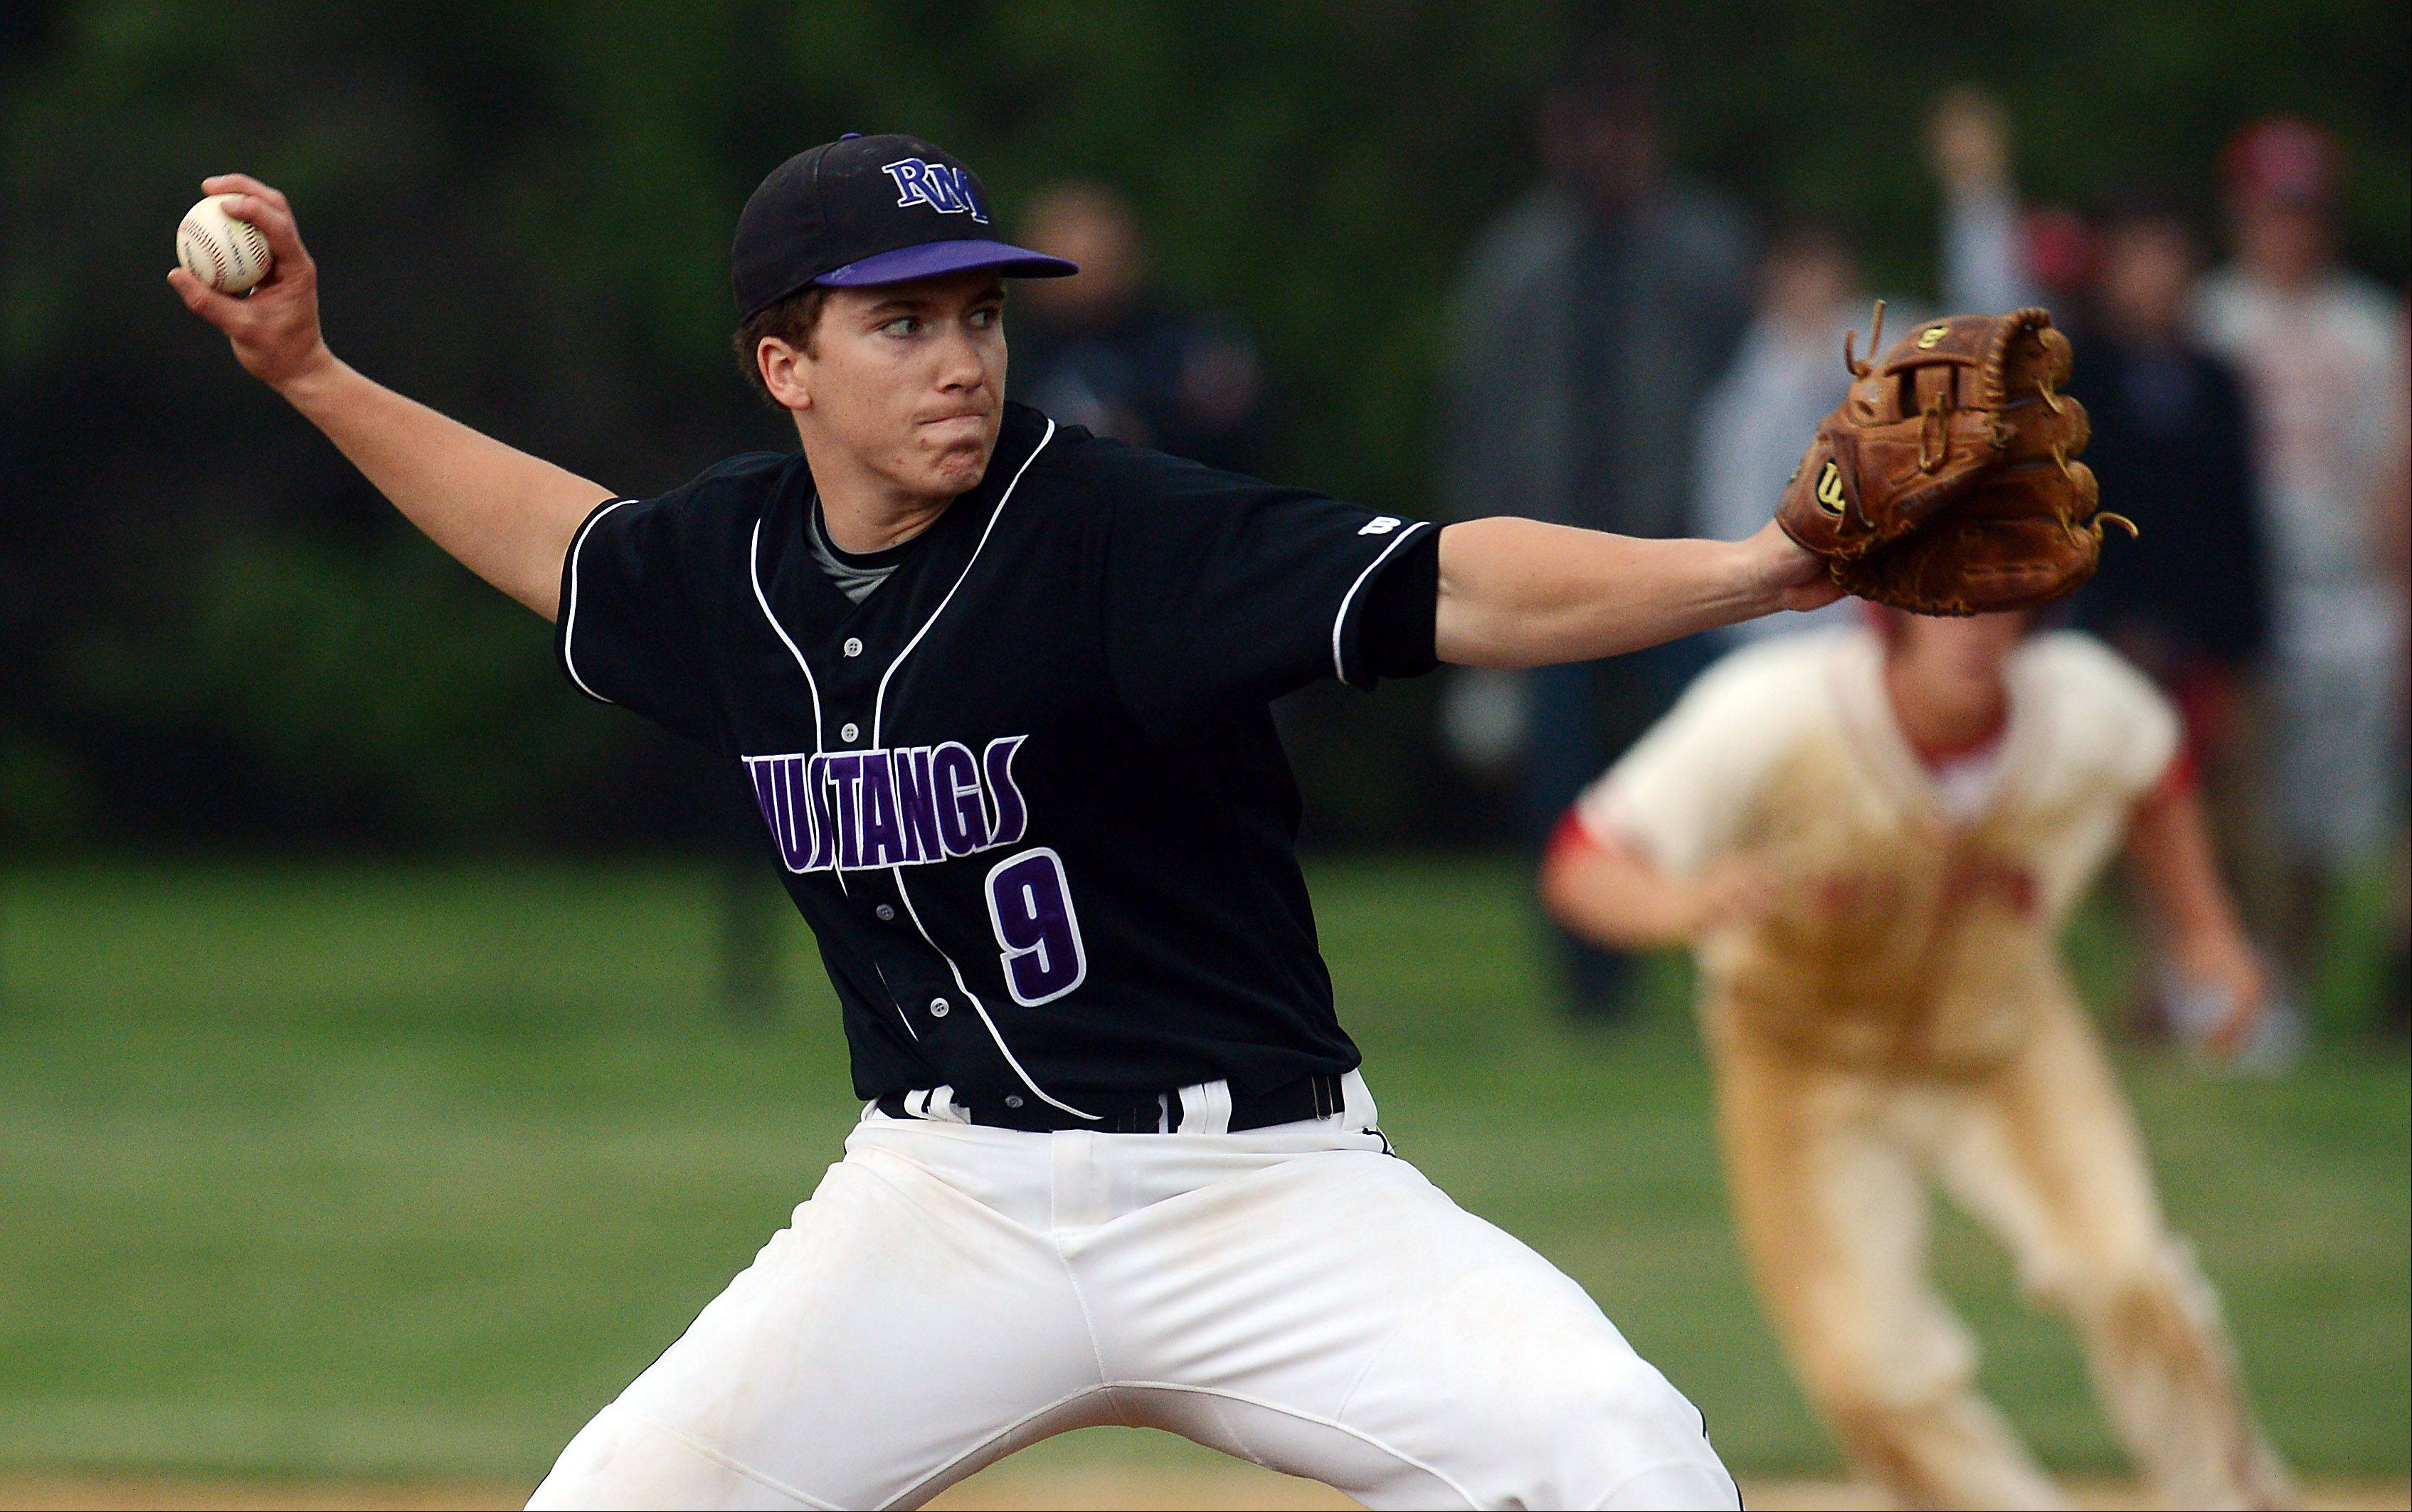 Rolling Meadows pitcher Matt Dennis fires against Barrington in the MSL championship game Friday. Dennis got the win and also hit a 2-run homer in the Mustangs' 11-6 victory.